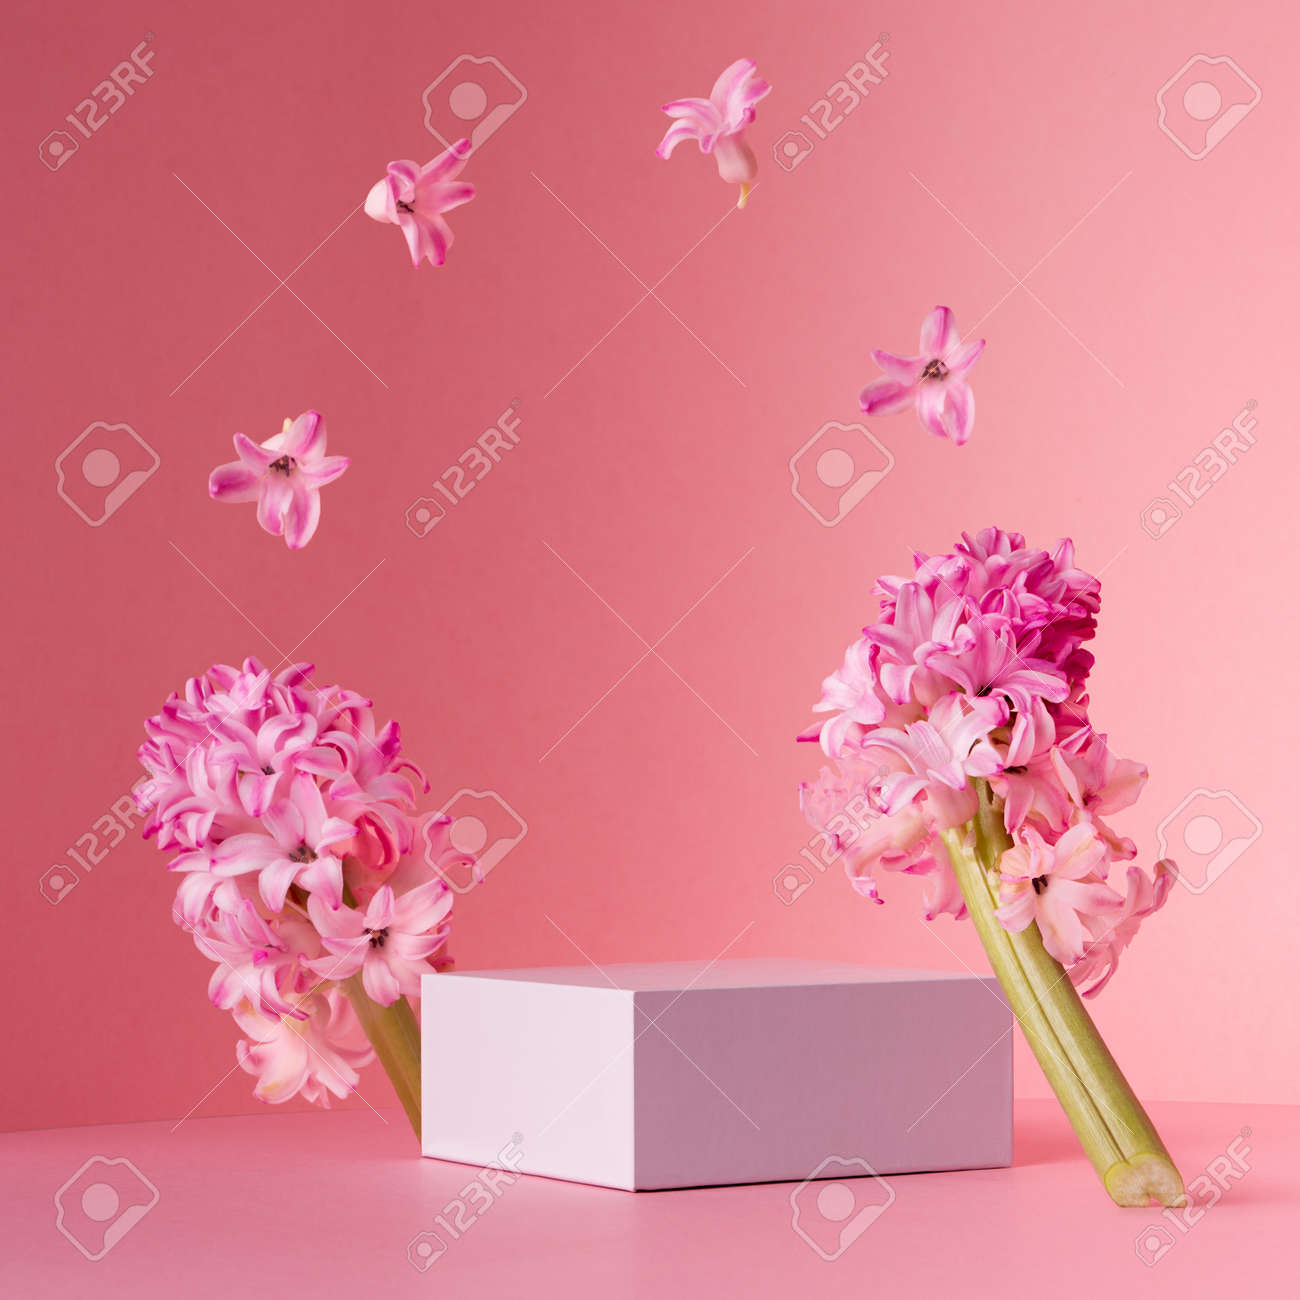 Delicate spring mock up for cosmetic and product display with white square podium, tender hyacinth flowers flying as frame on pastel pink background. - 168468923